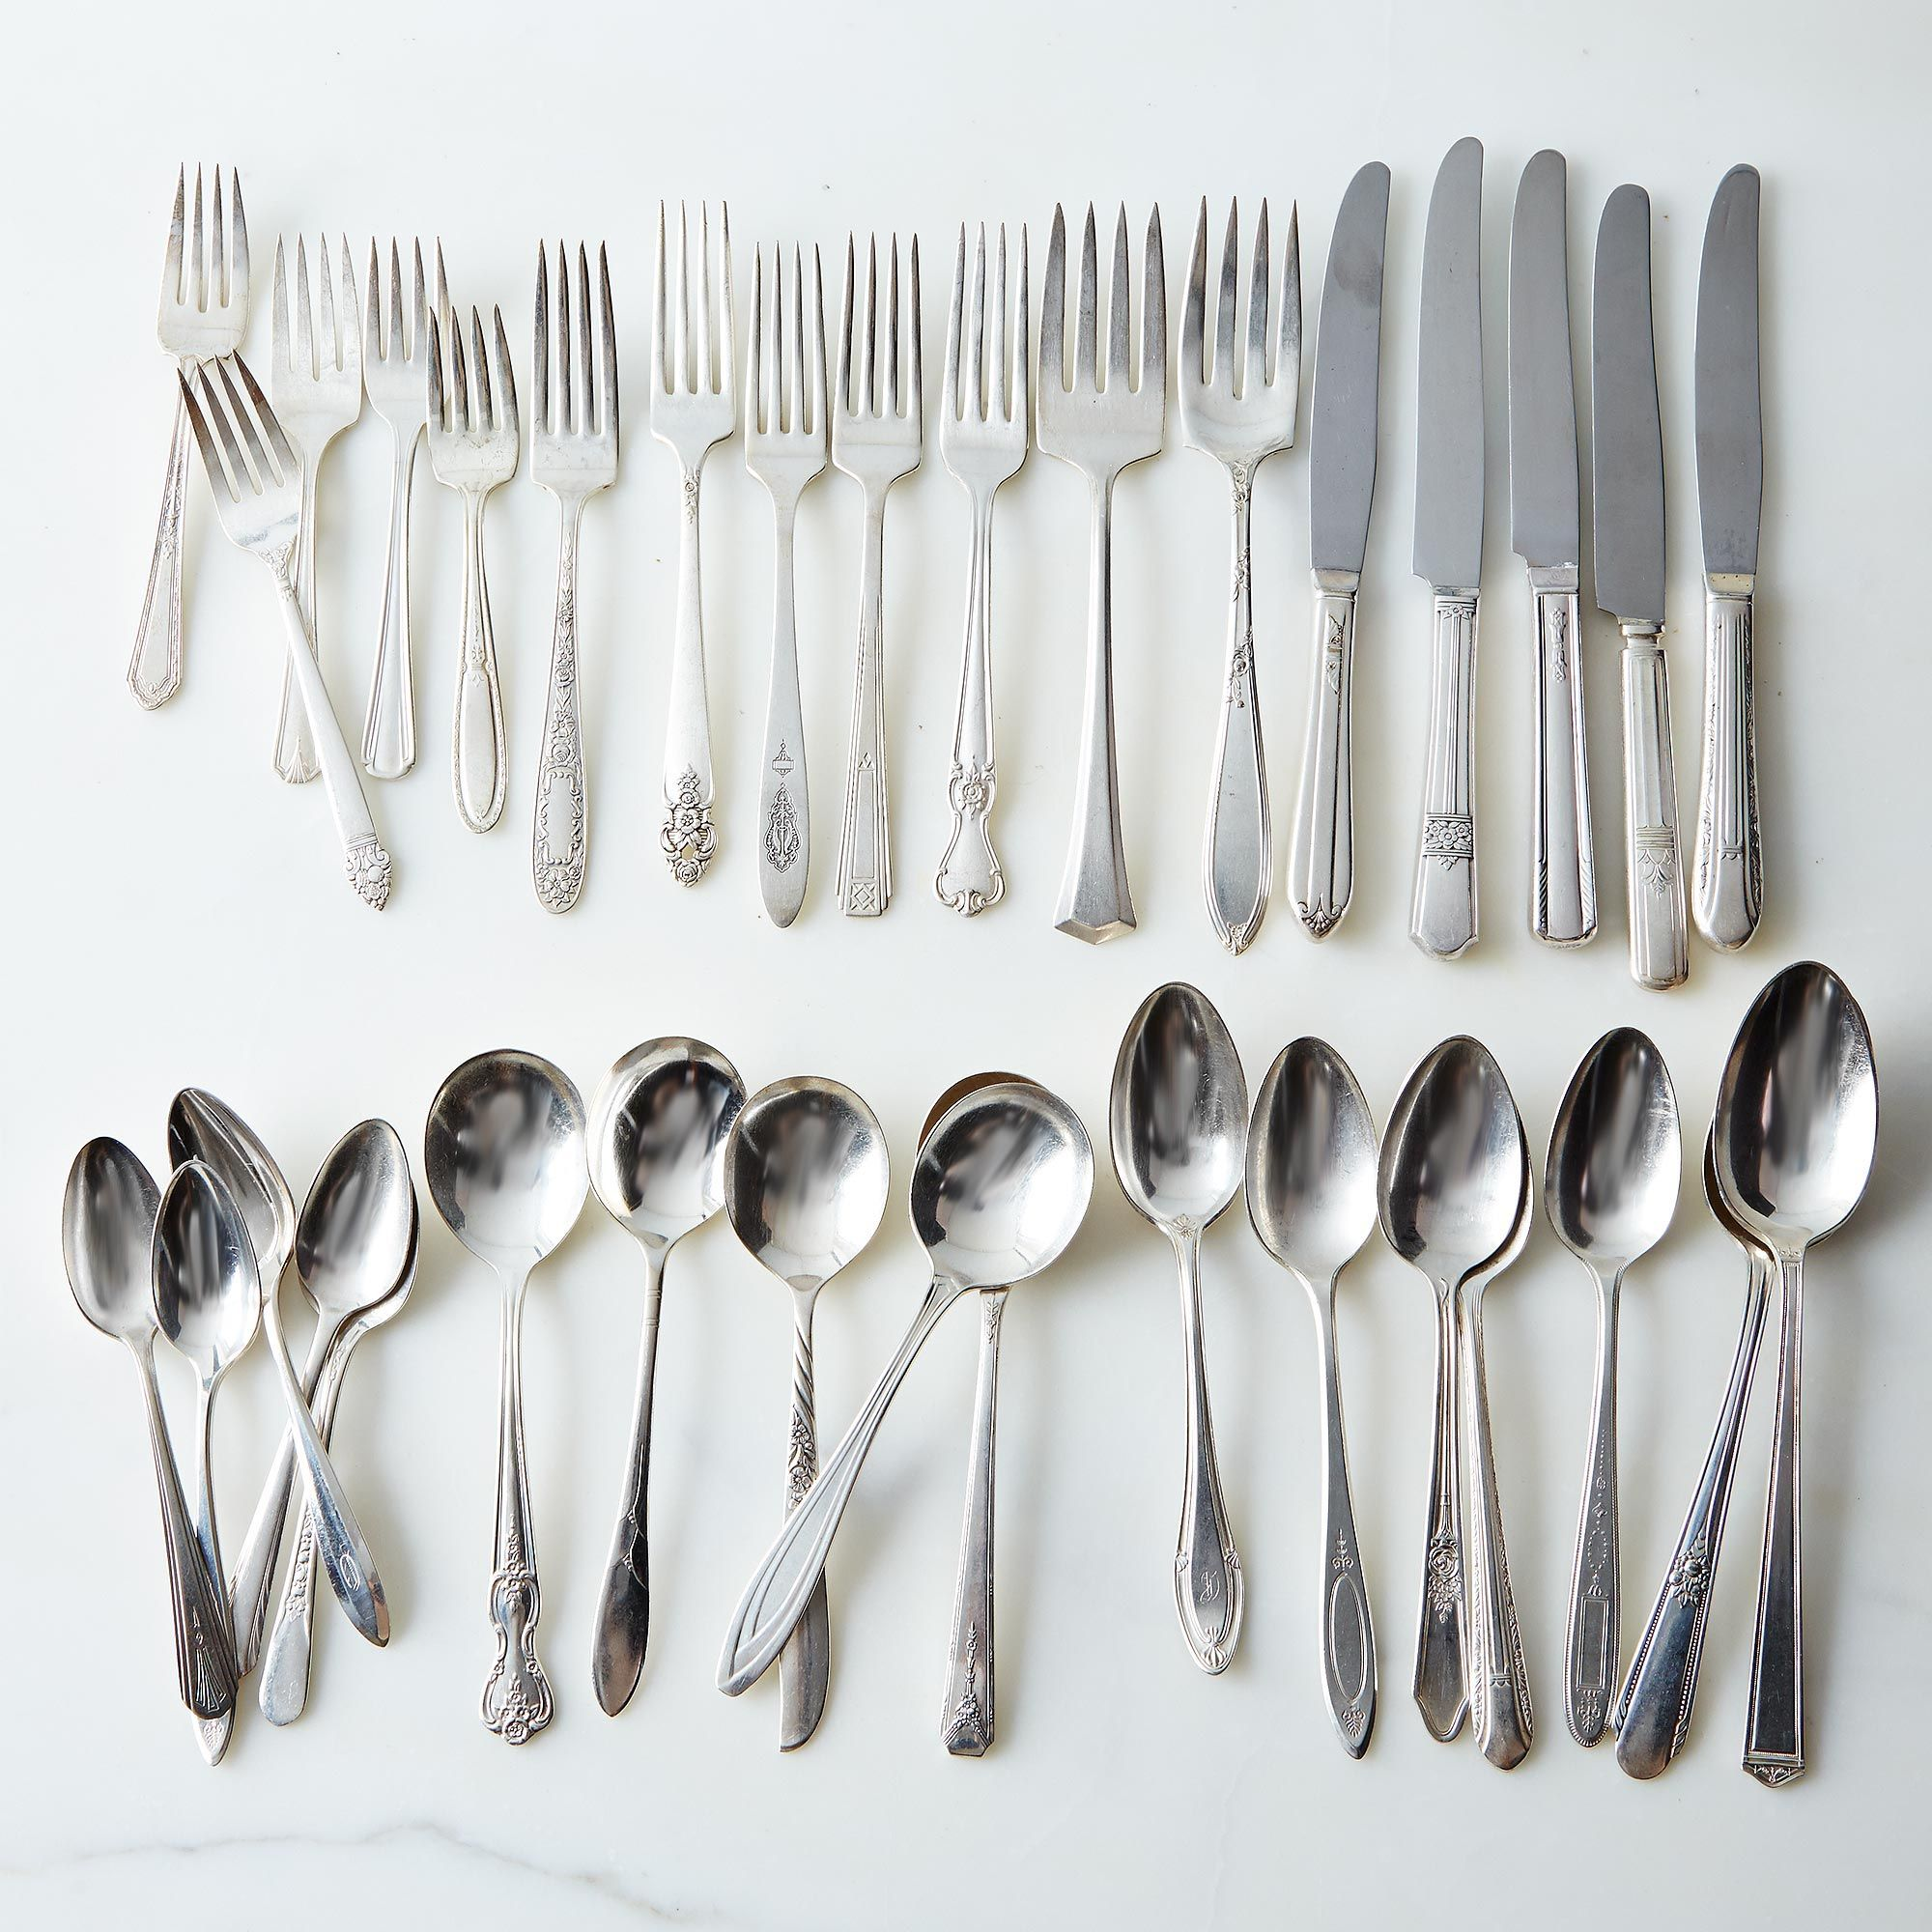 Vintage Silver-Plated Eclectic Flatware (Sets of 4)